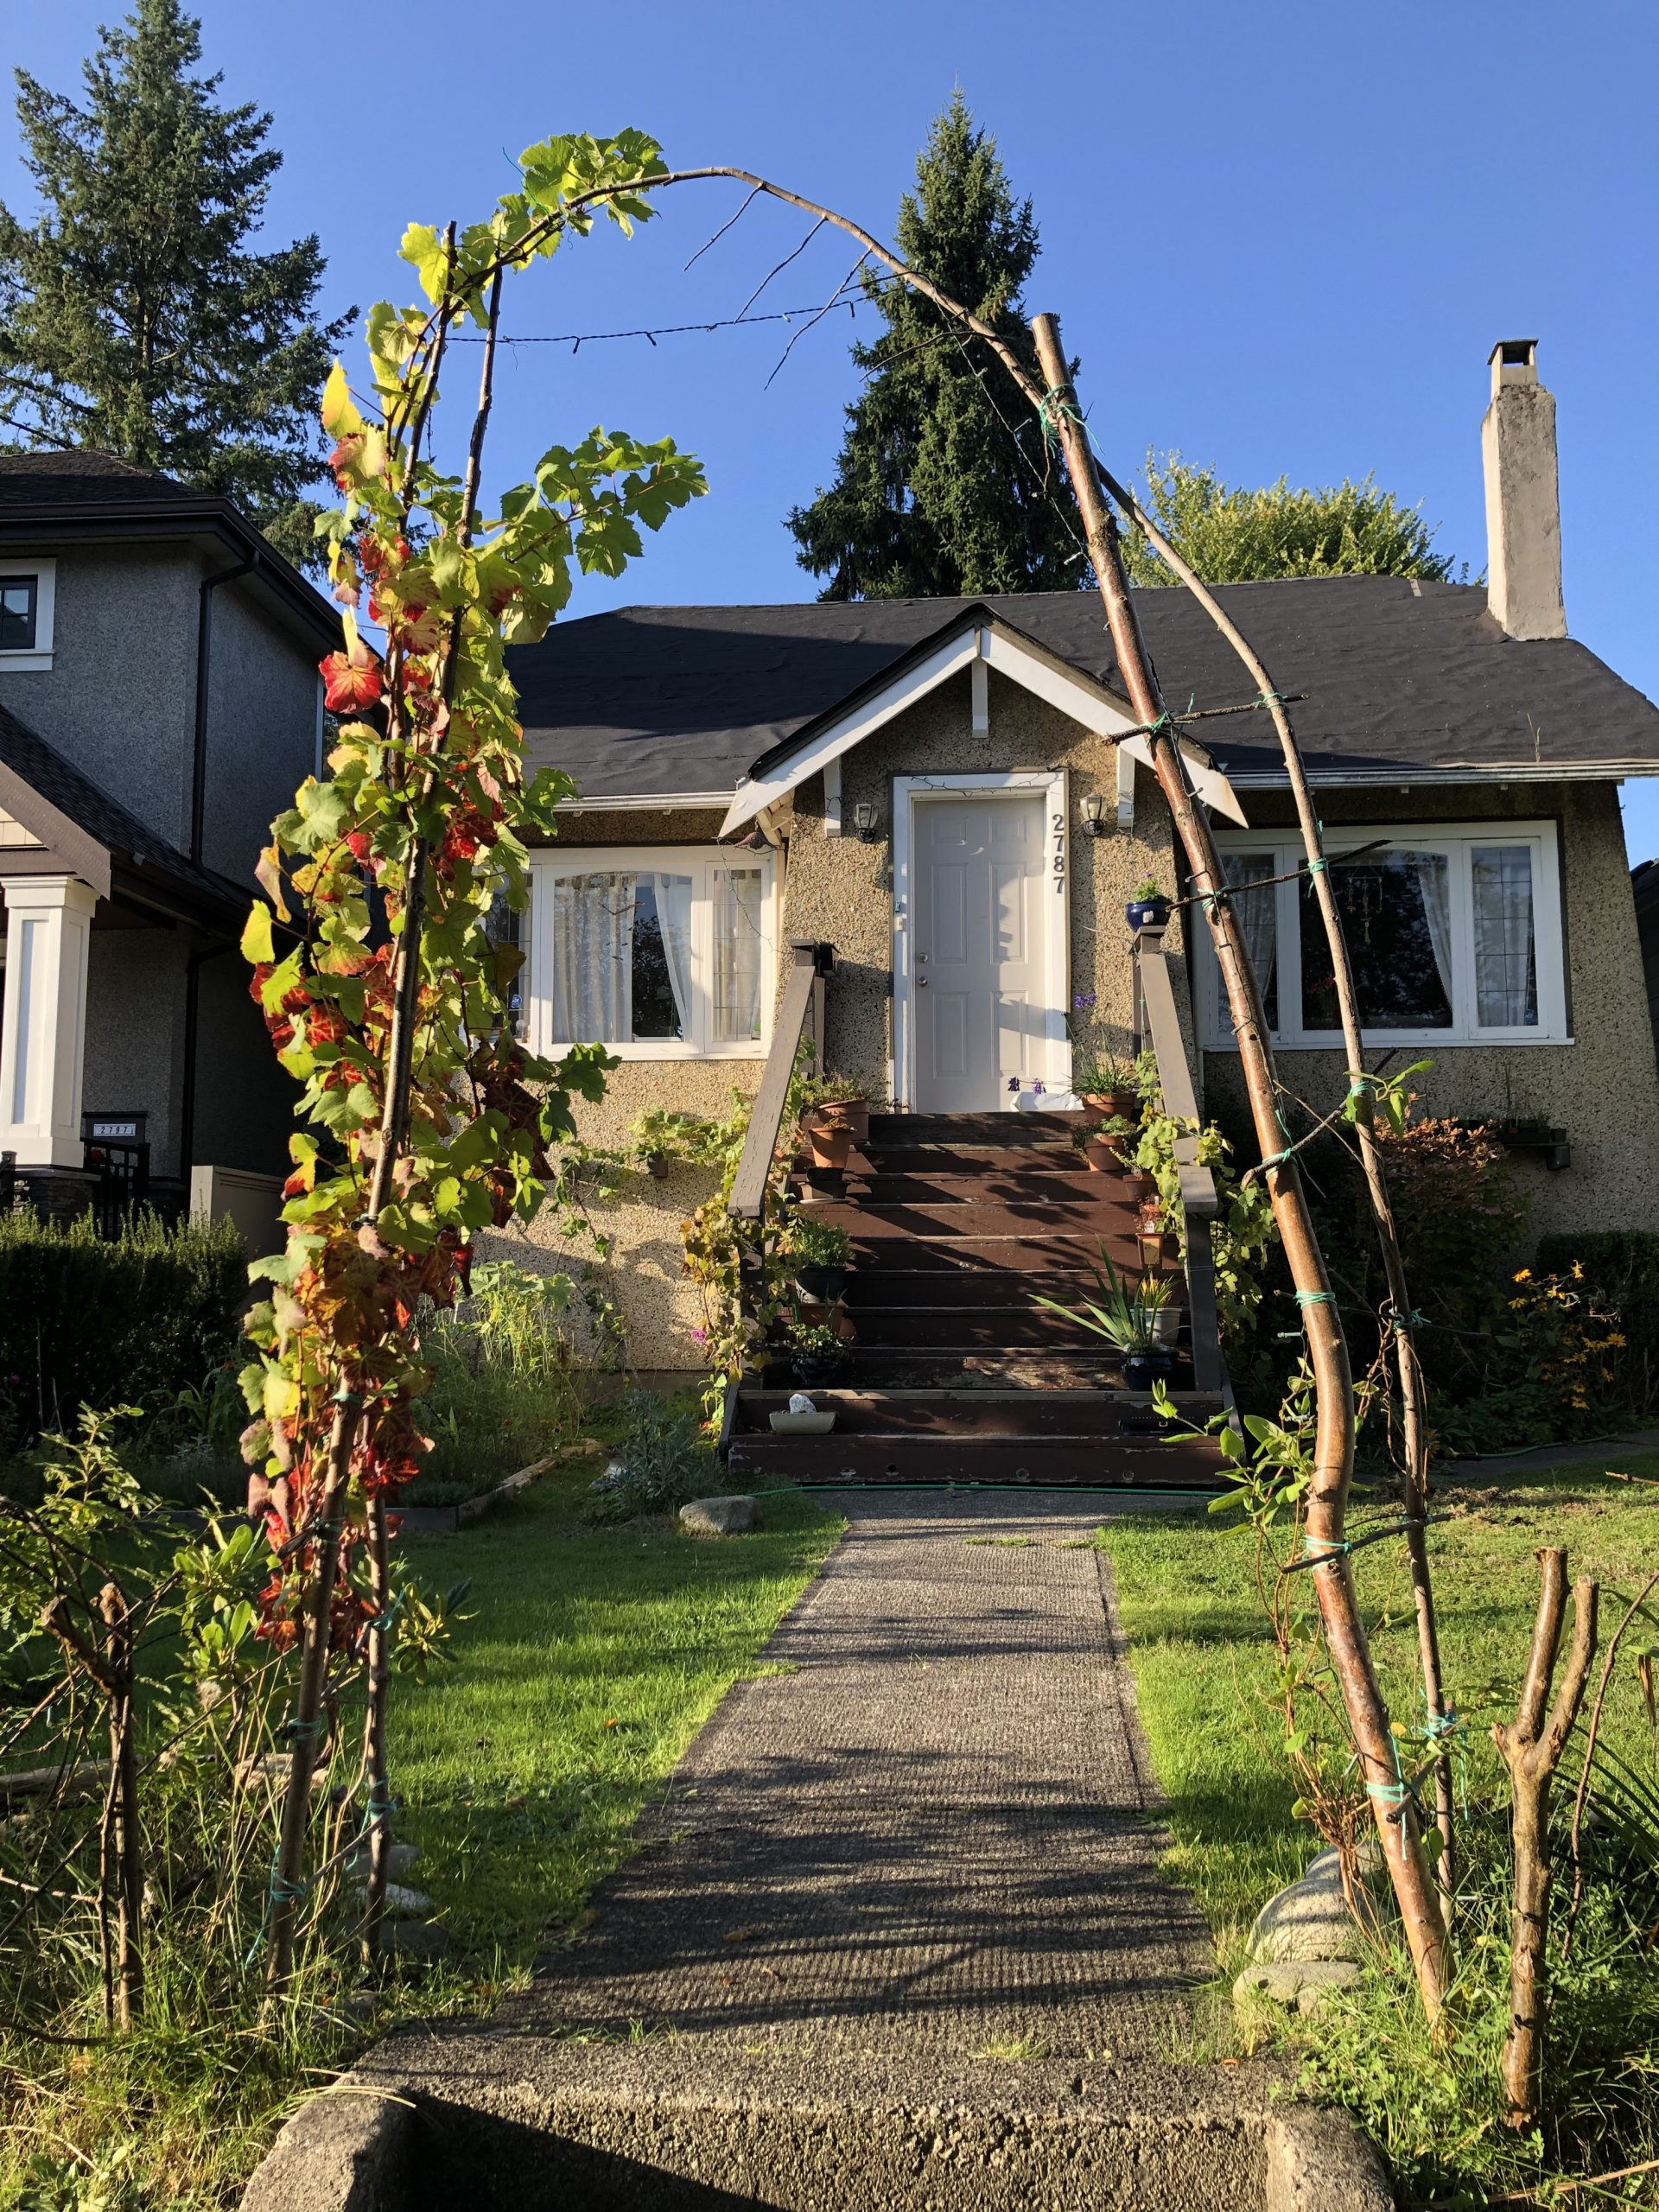 [LEASED] Vancouver West Near UBC – Half Basement 1 Bedroom Suite With Separate Entrance Inside Cozy House